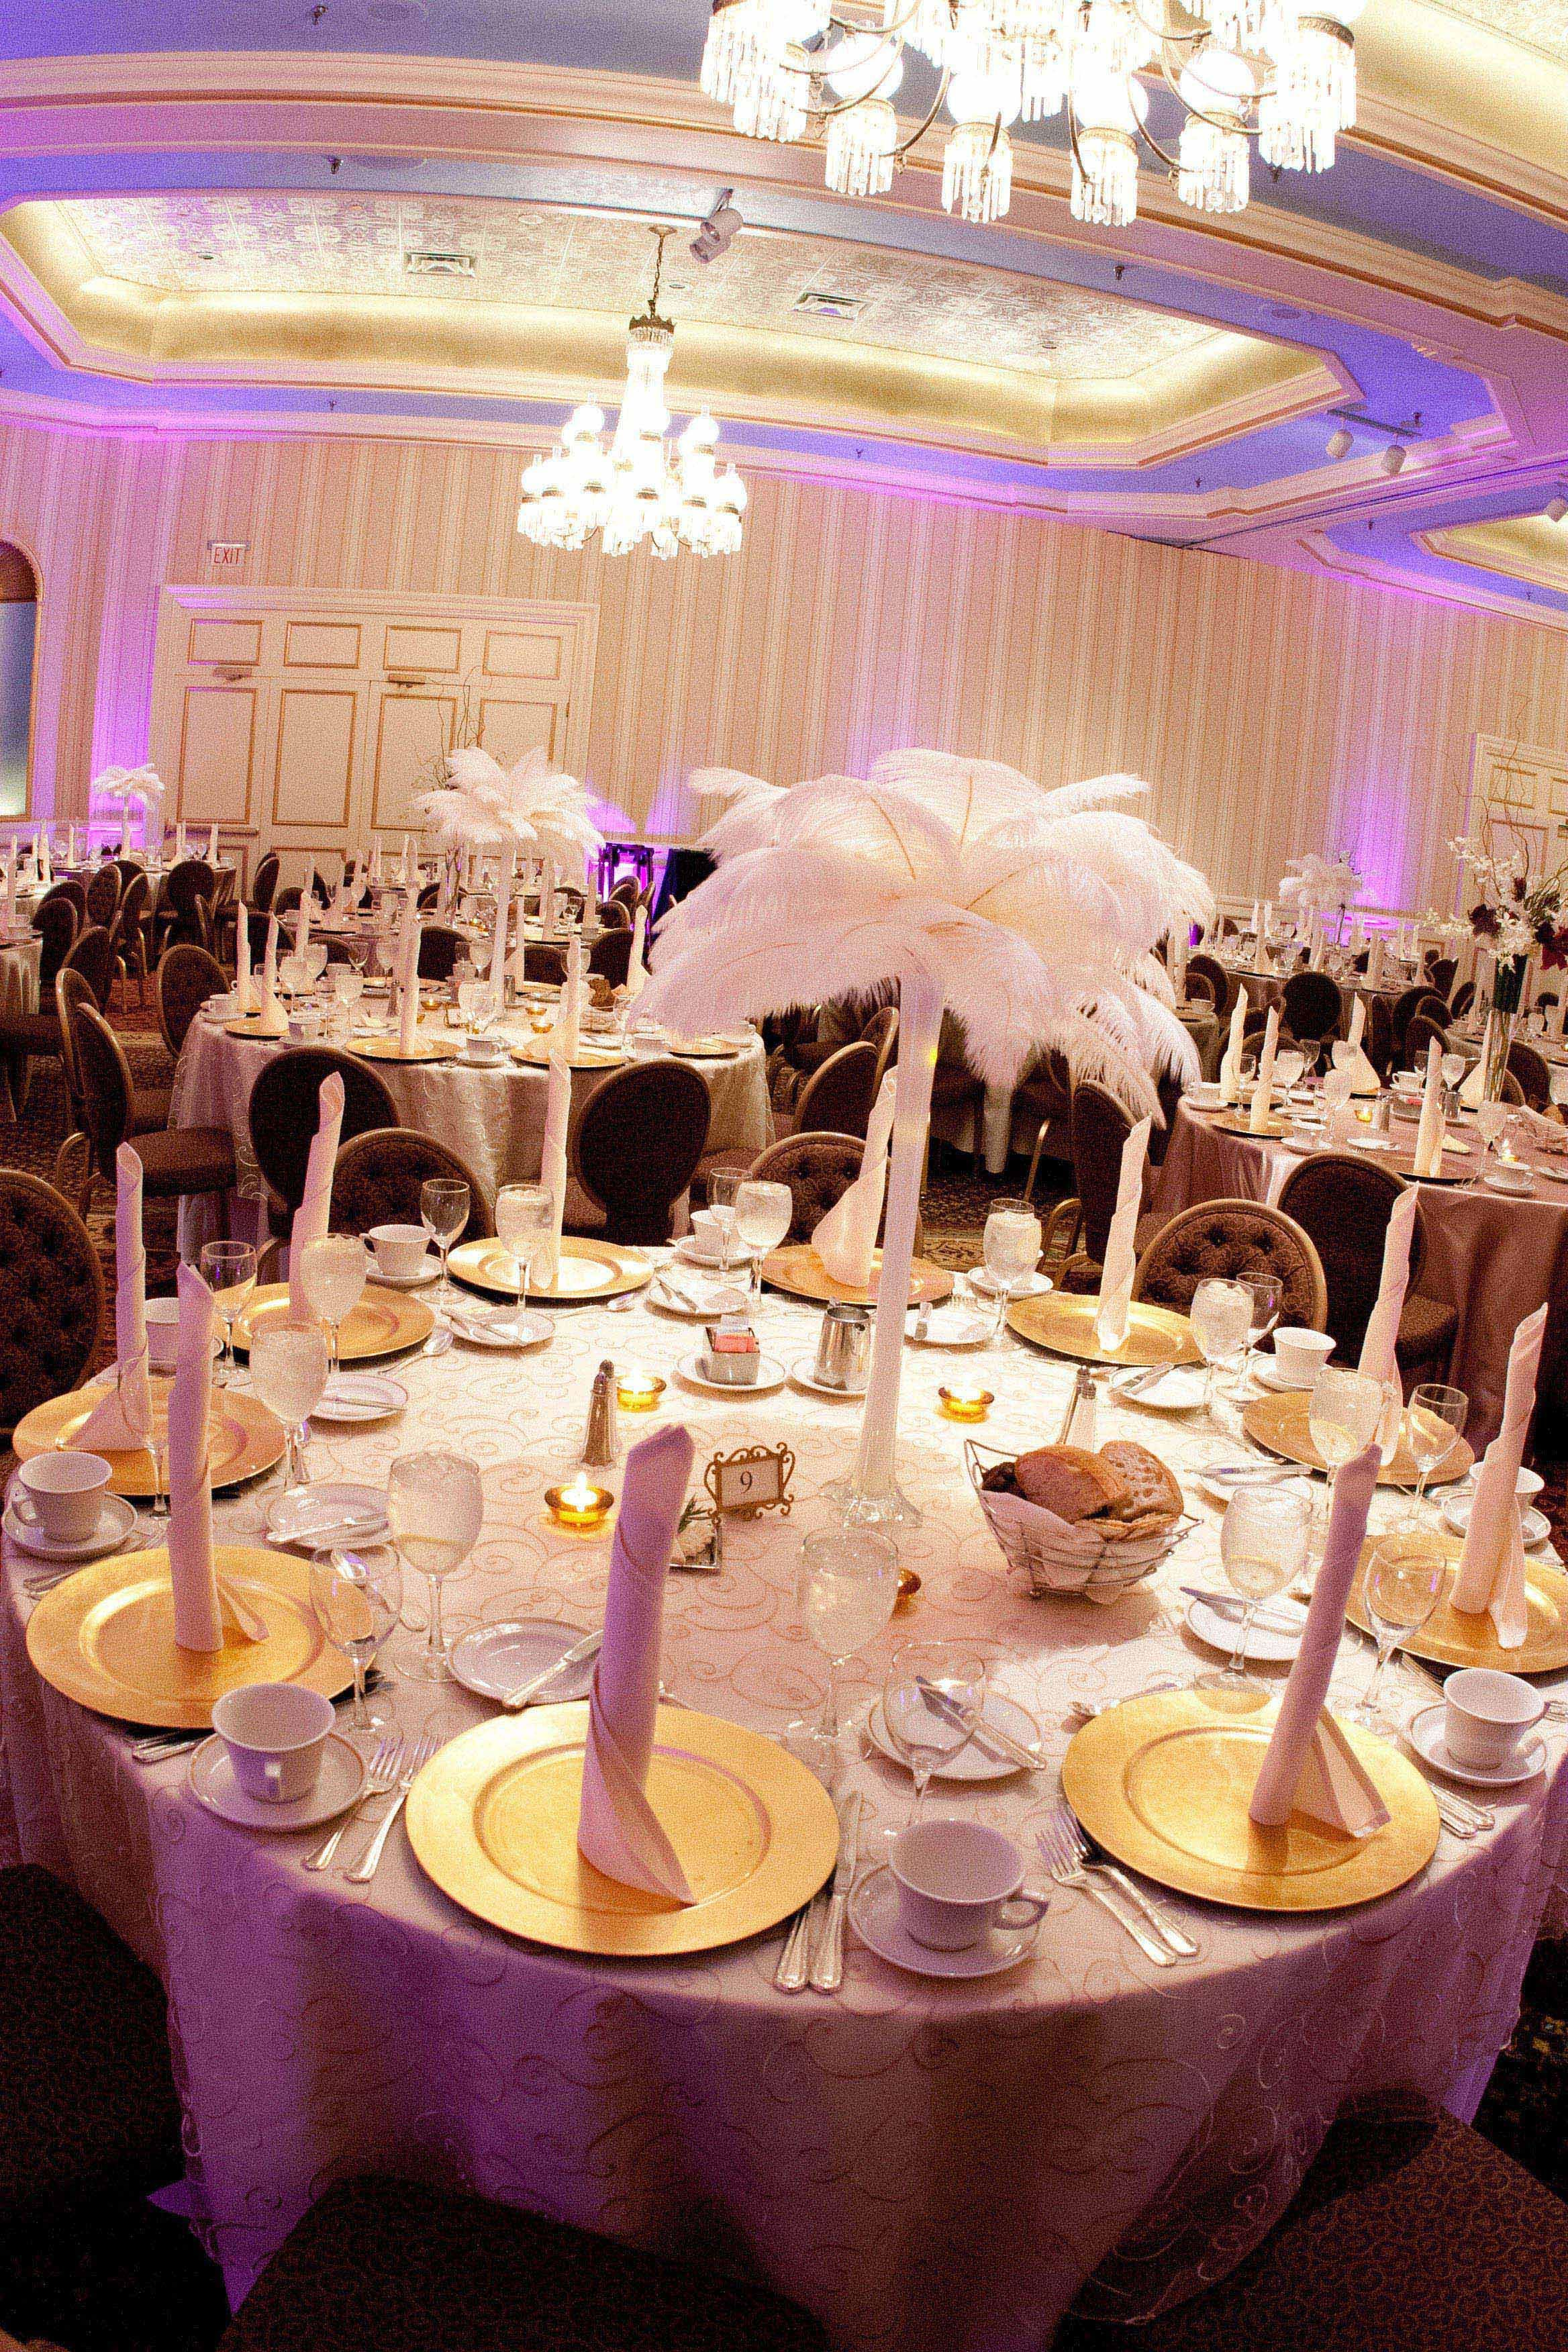 affordable wedding reception venues minnesota%0A Weddings Features   The Best of the Twin Cities   Mpls St  Paul Magazine    Varsity Theater   MN Weddings   Pinterest   Weddings  Wedding and Wedding  venues